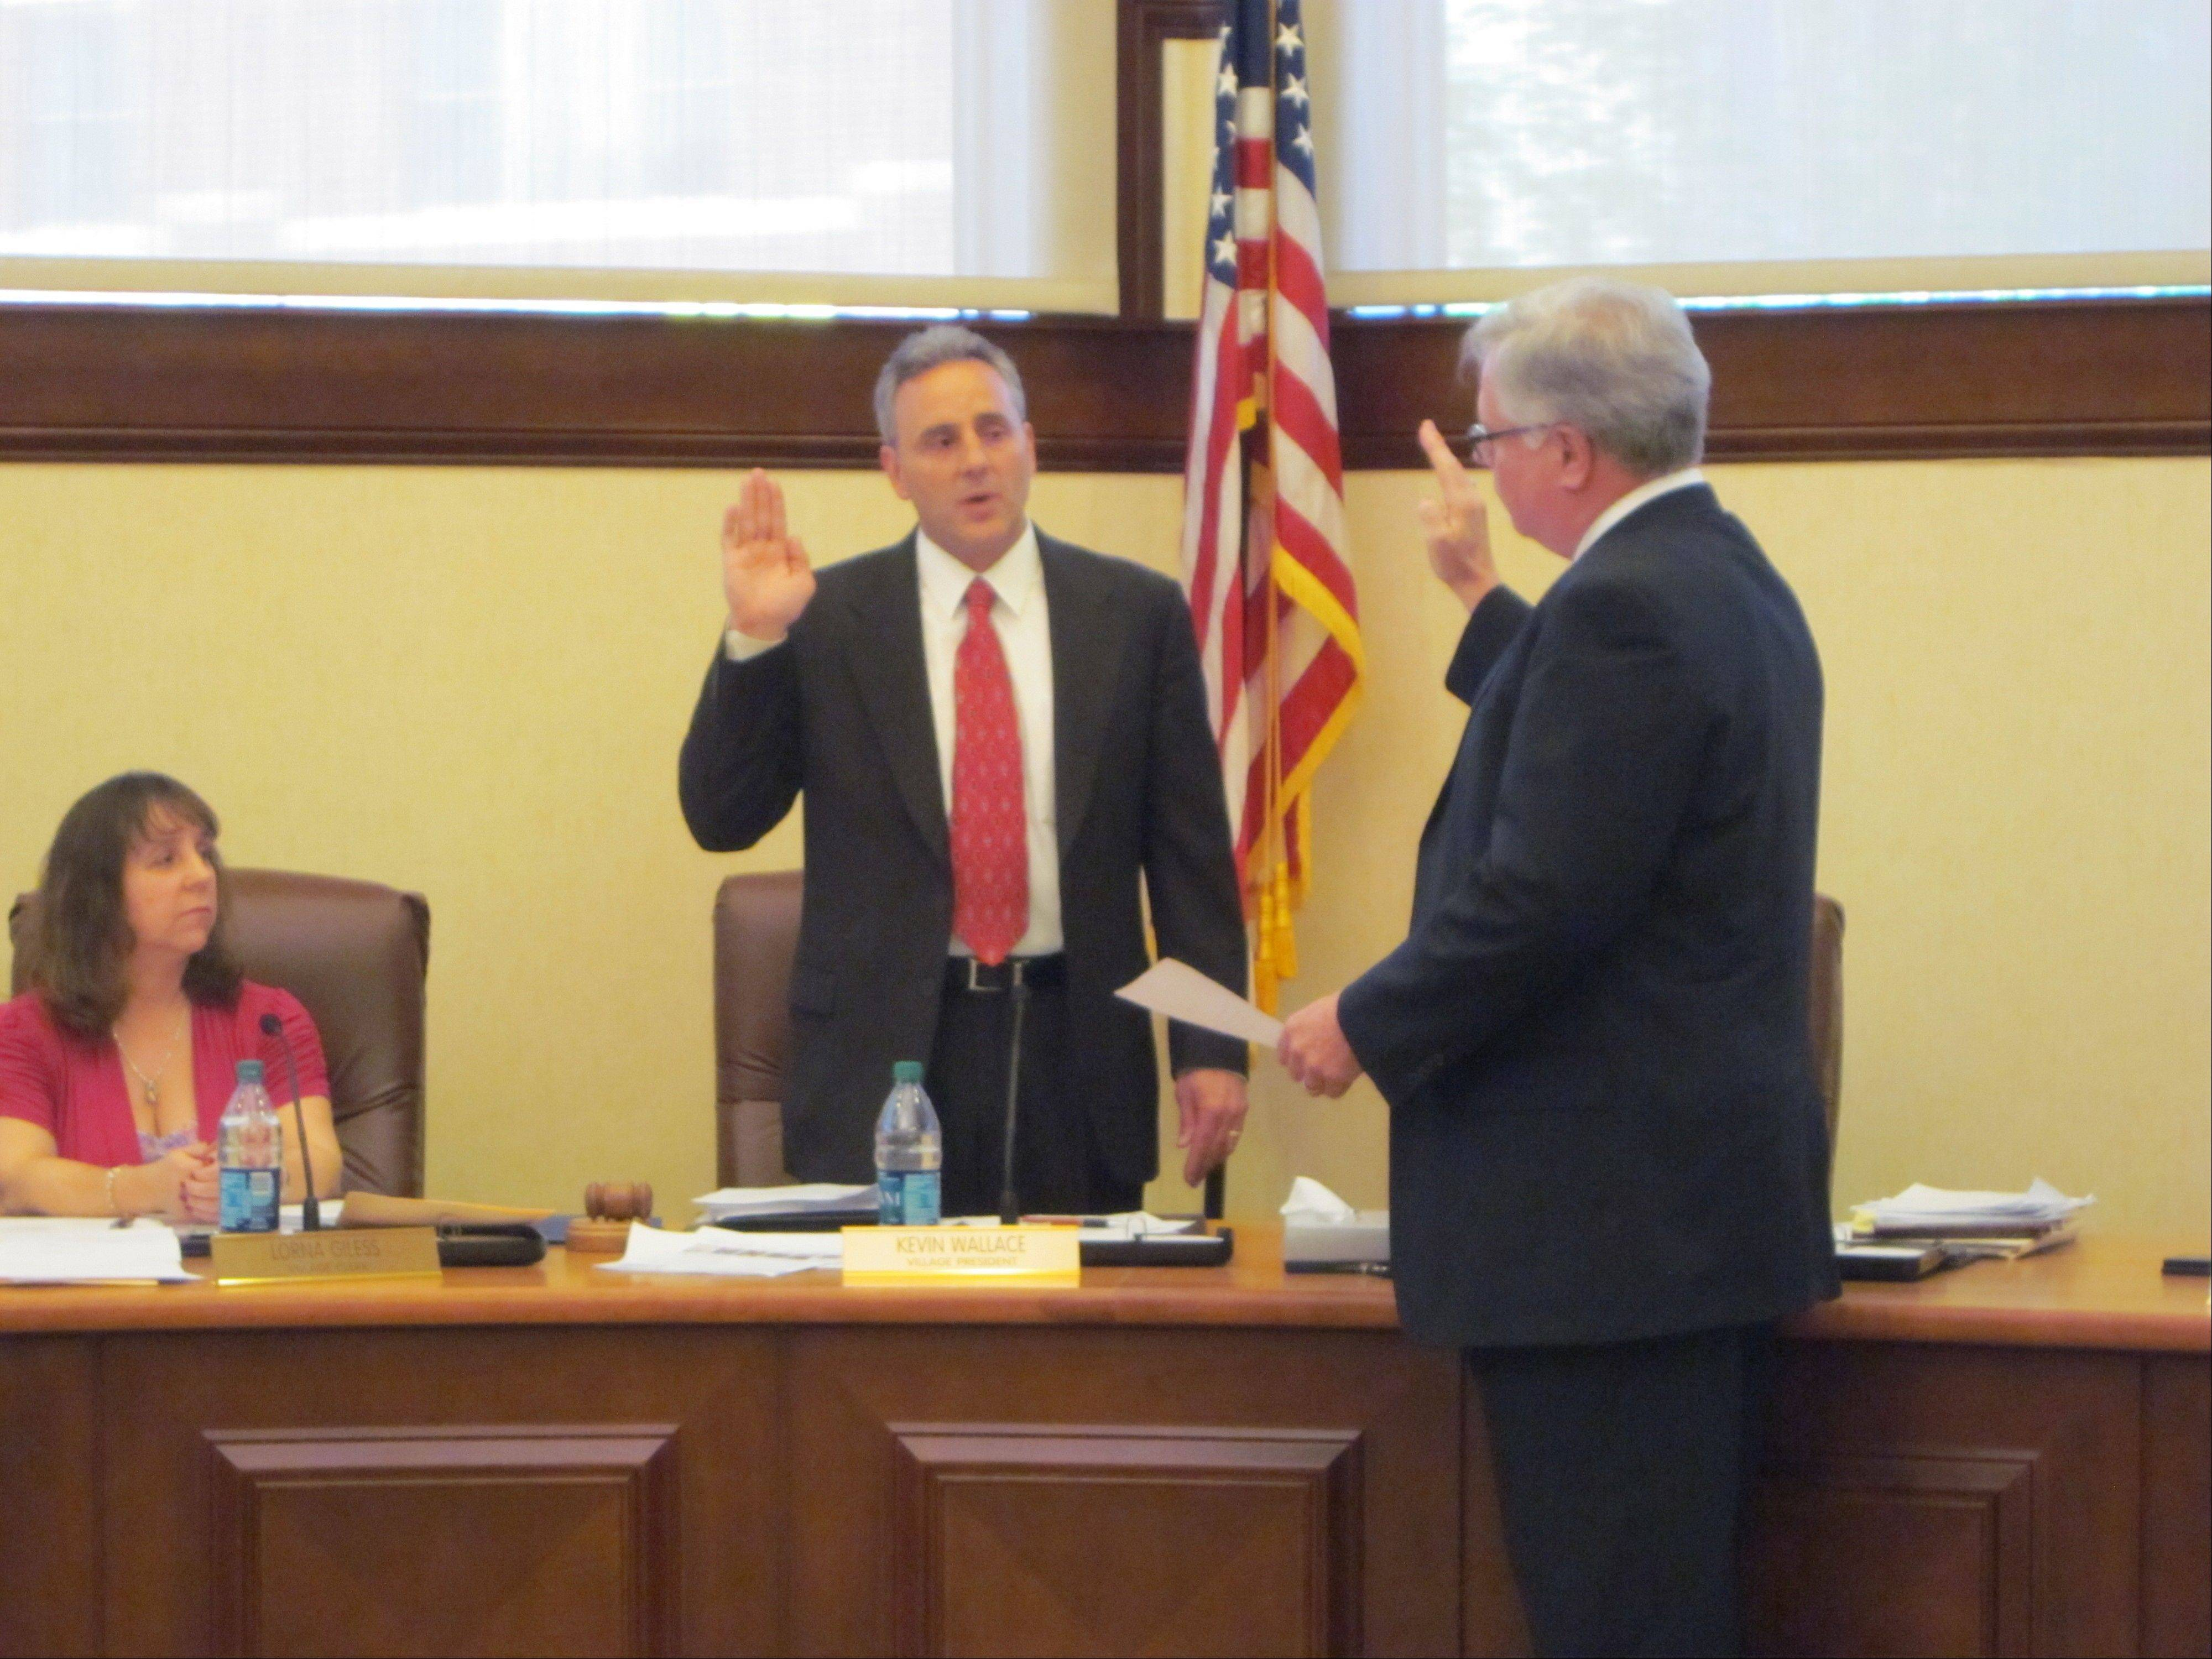 Village Attorney Bryan Mraz swears in new Village President Kevin Wallace as Village Clerk Lorna Gilees looks on during Tuesday�s village board meeting.